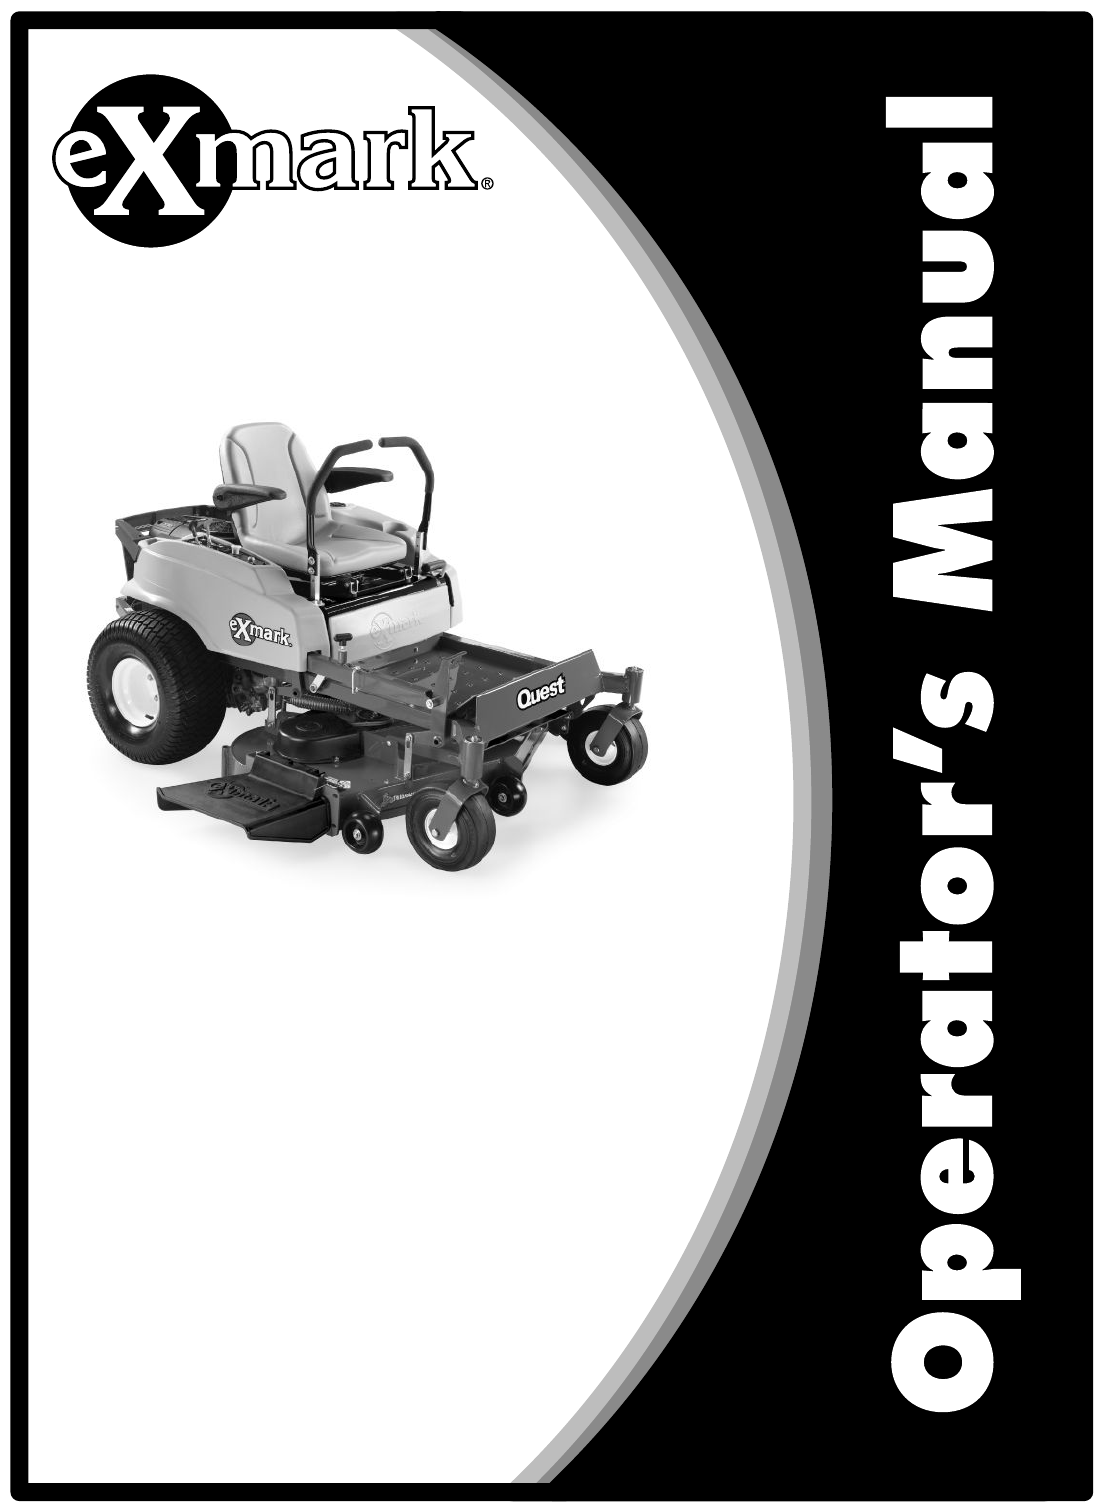 Exmark Quest Lawn Mower Users Manual